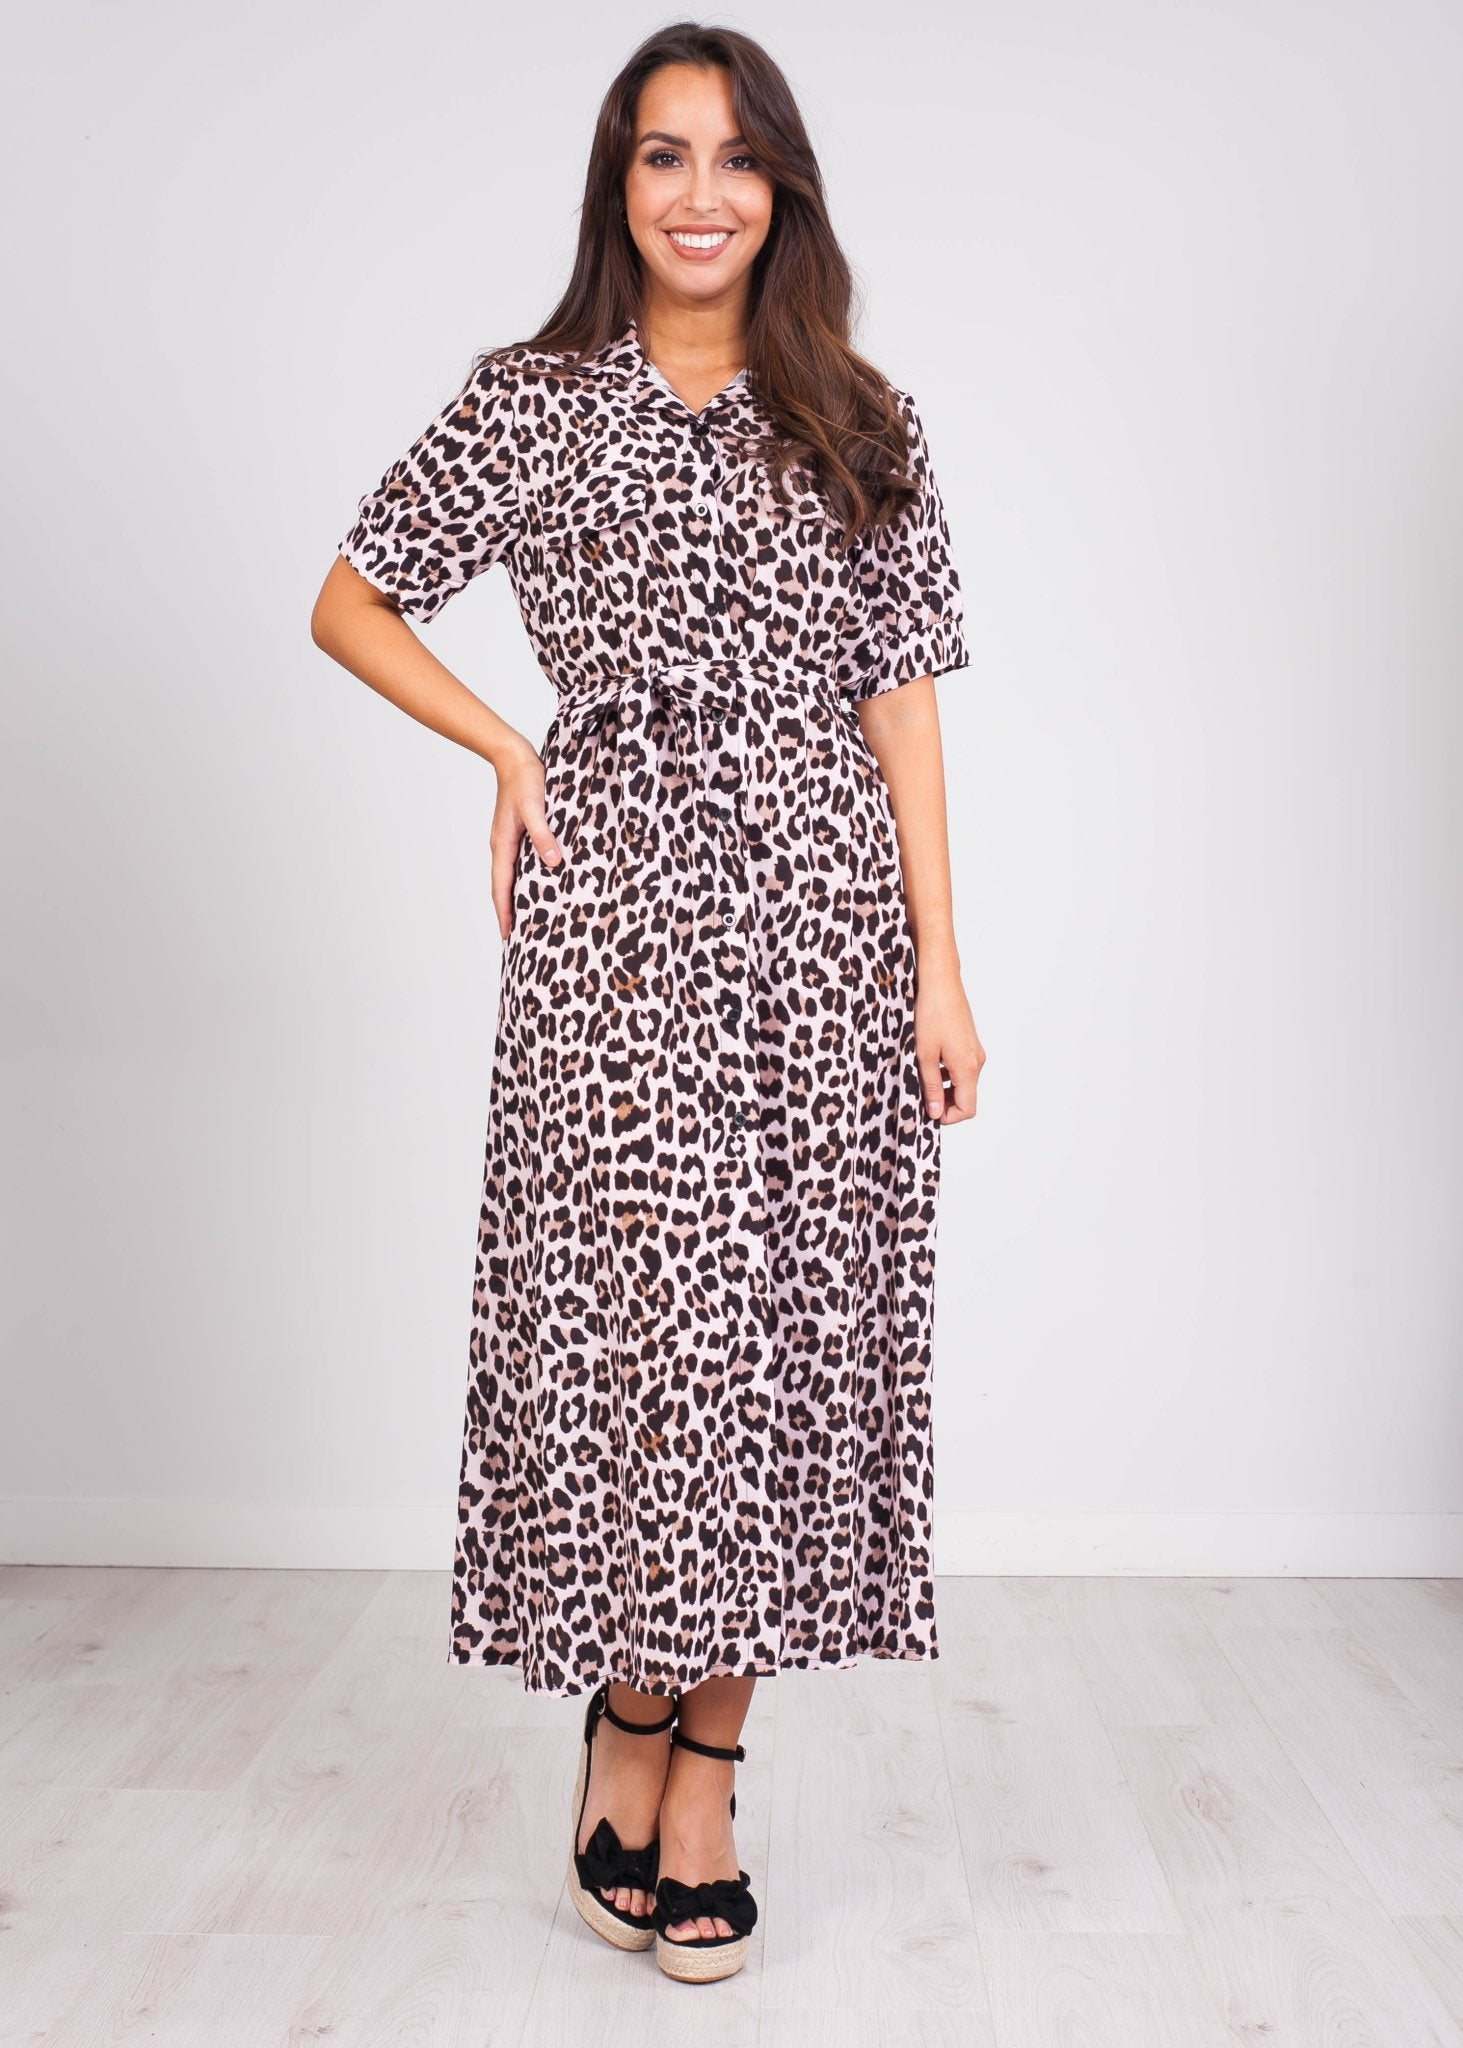 Emilia Blush Leopard Midi Dress - The Walk in Wardrobe